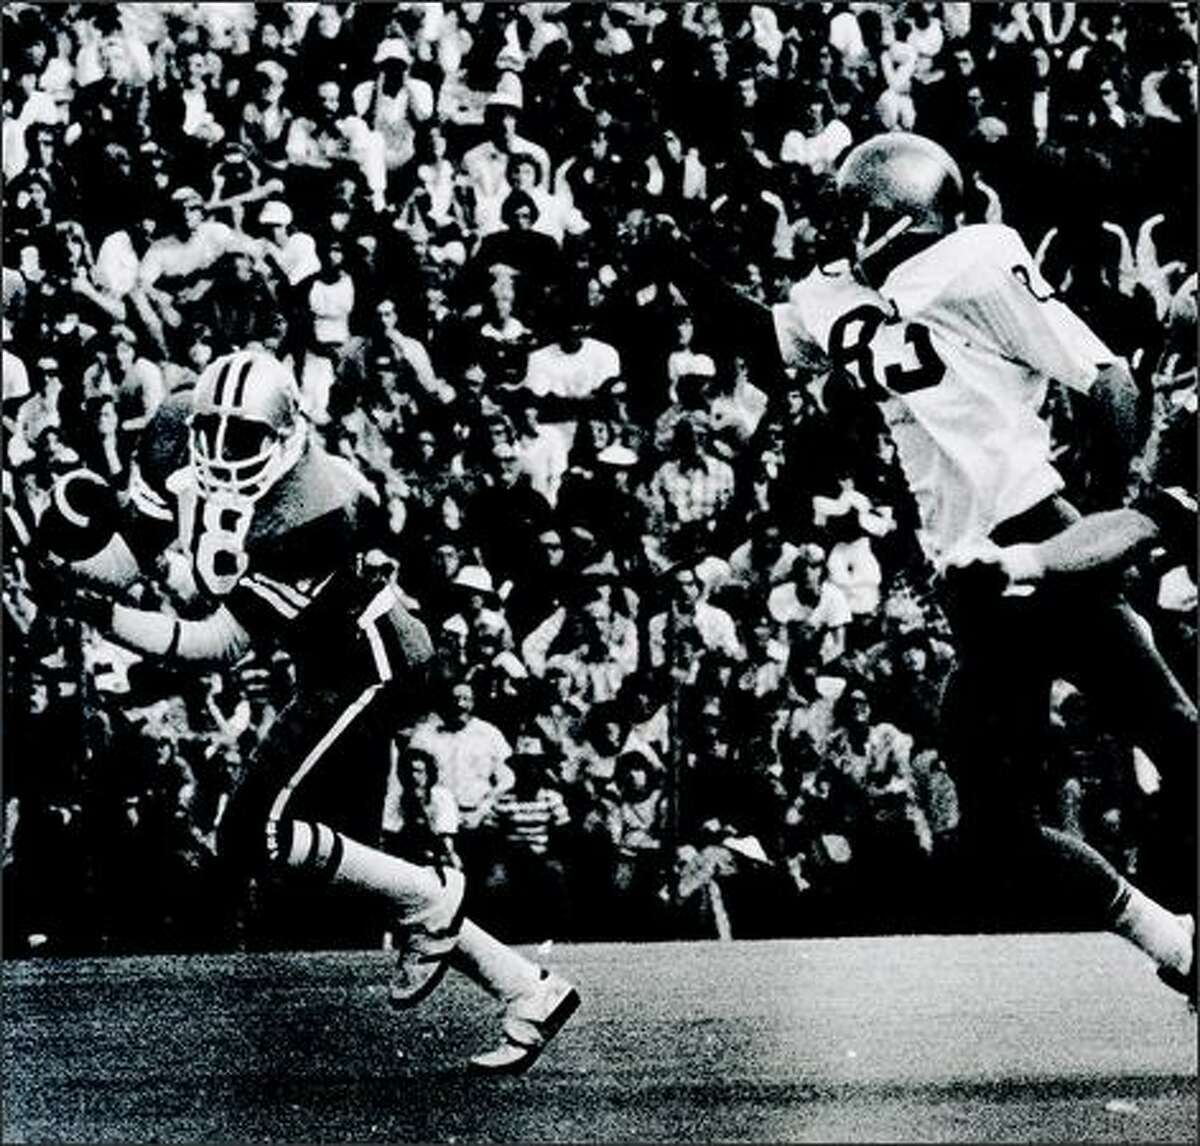 Spider Gaines catches the game winning 78-yard TD pass from Warren Moon in the 1975 Apple Cup.